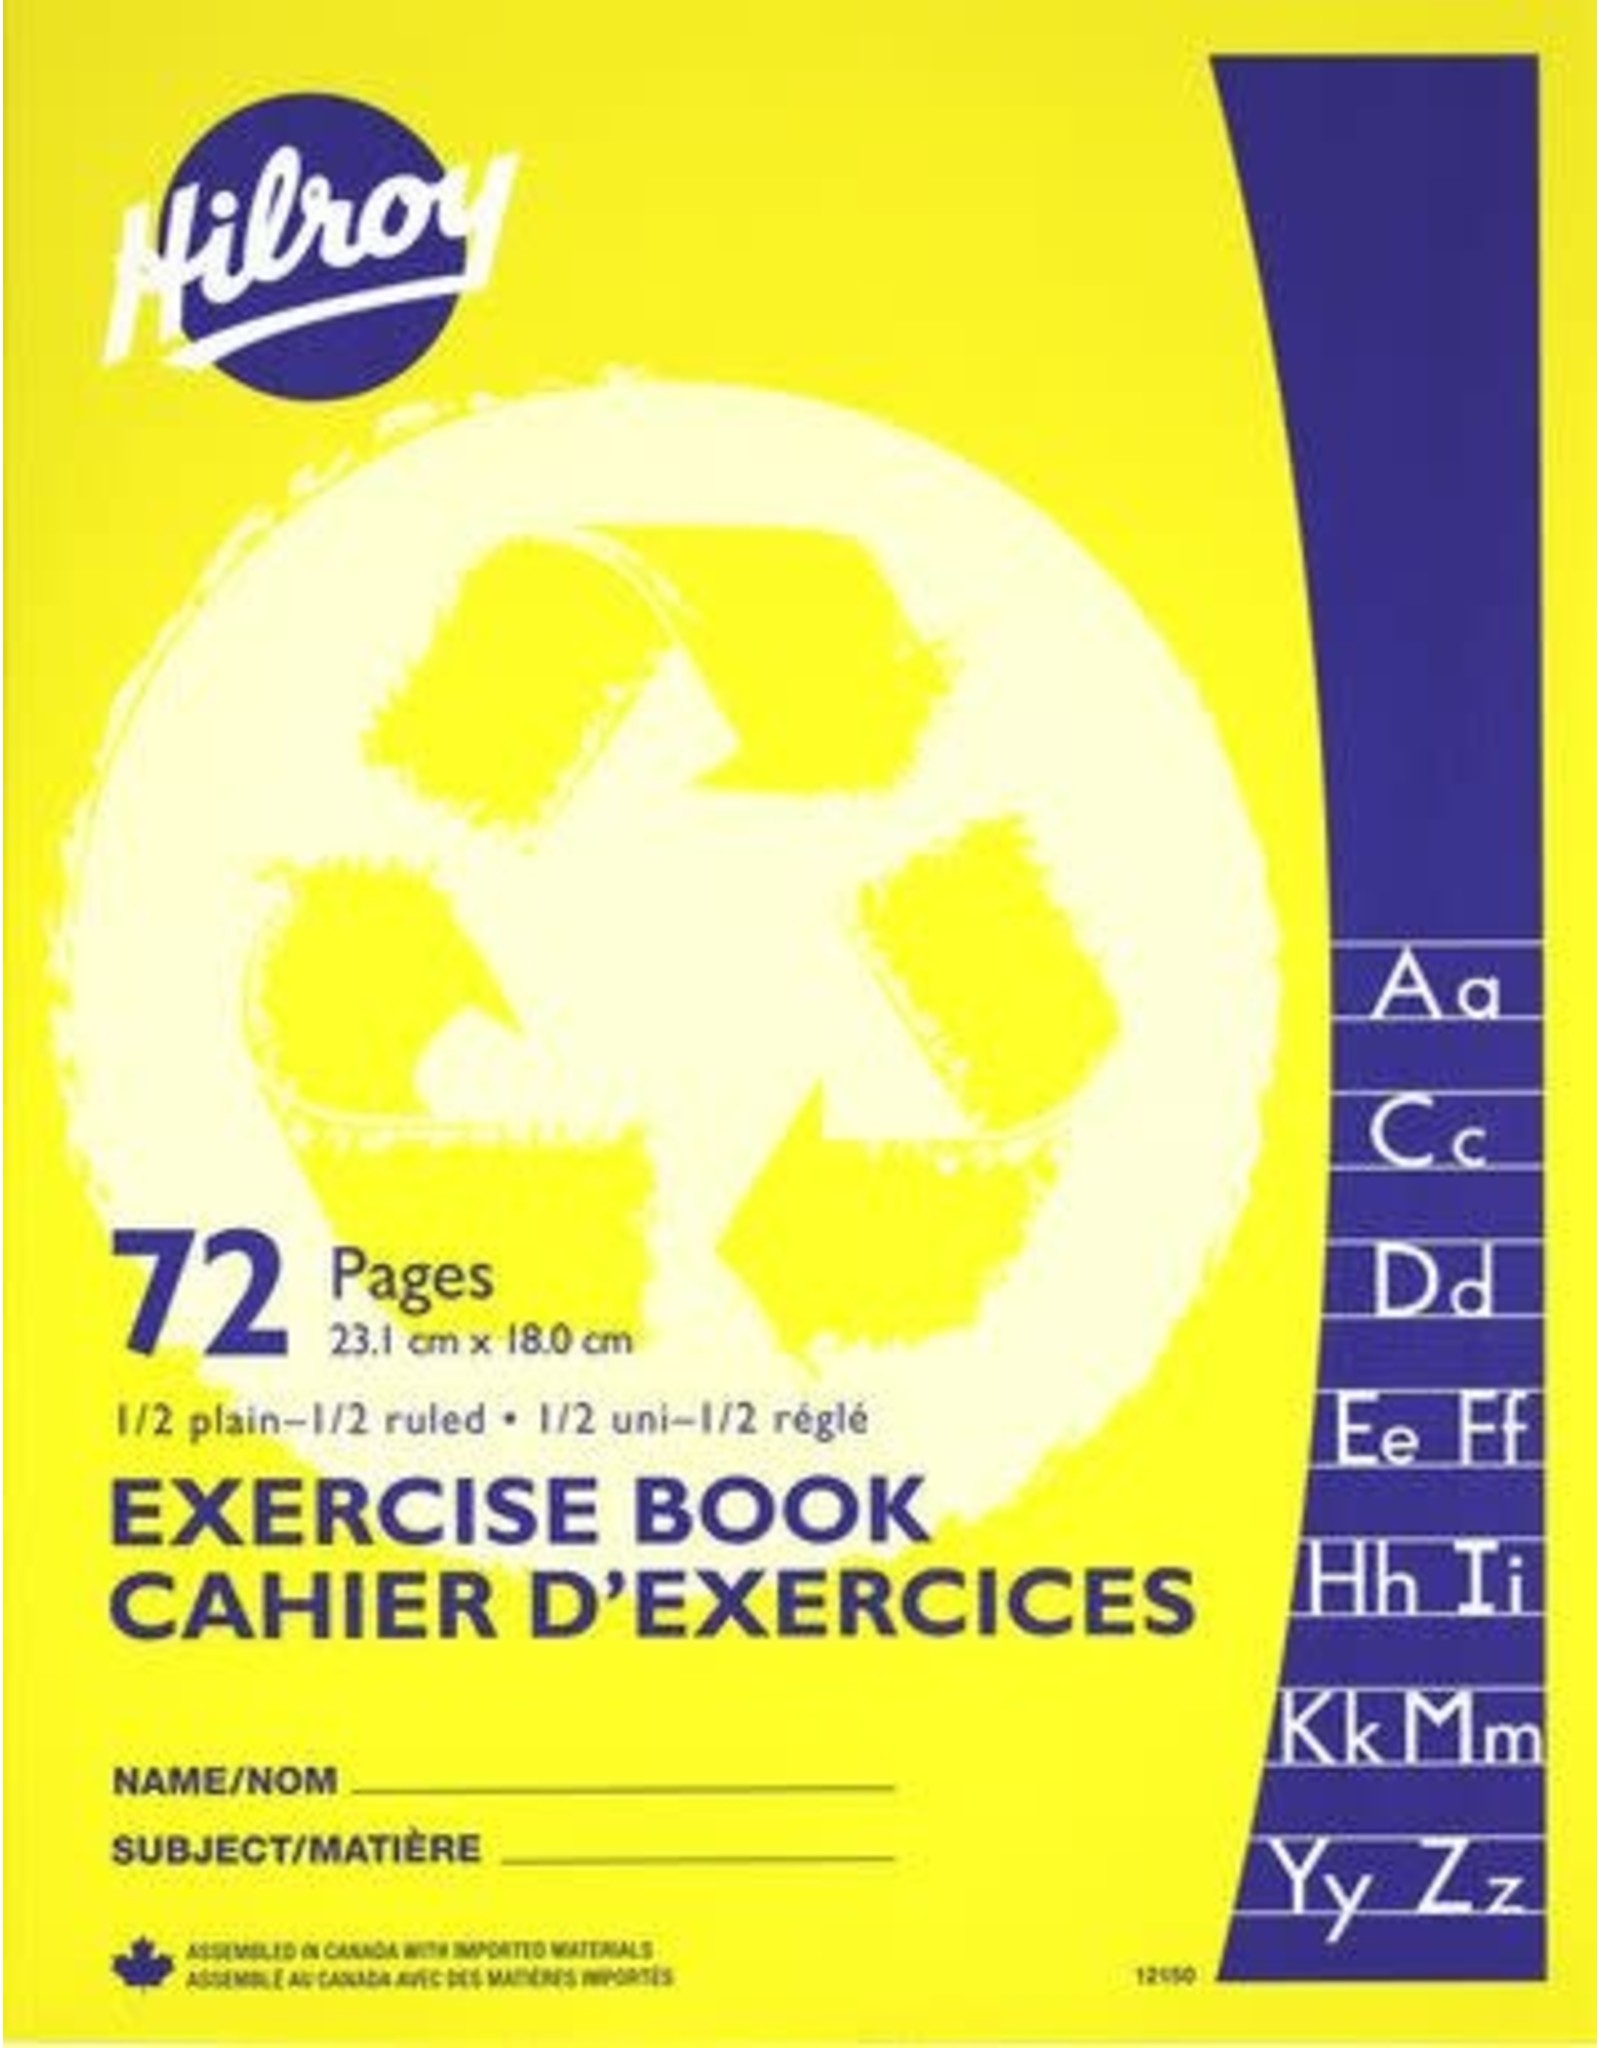 Hilroy EXERCISE BOOK-STITCHED 9-1/8X7-1/8 1/2 RULED, 1/2 PLAIN